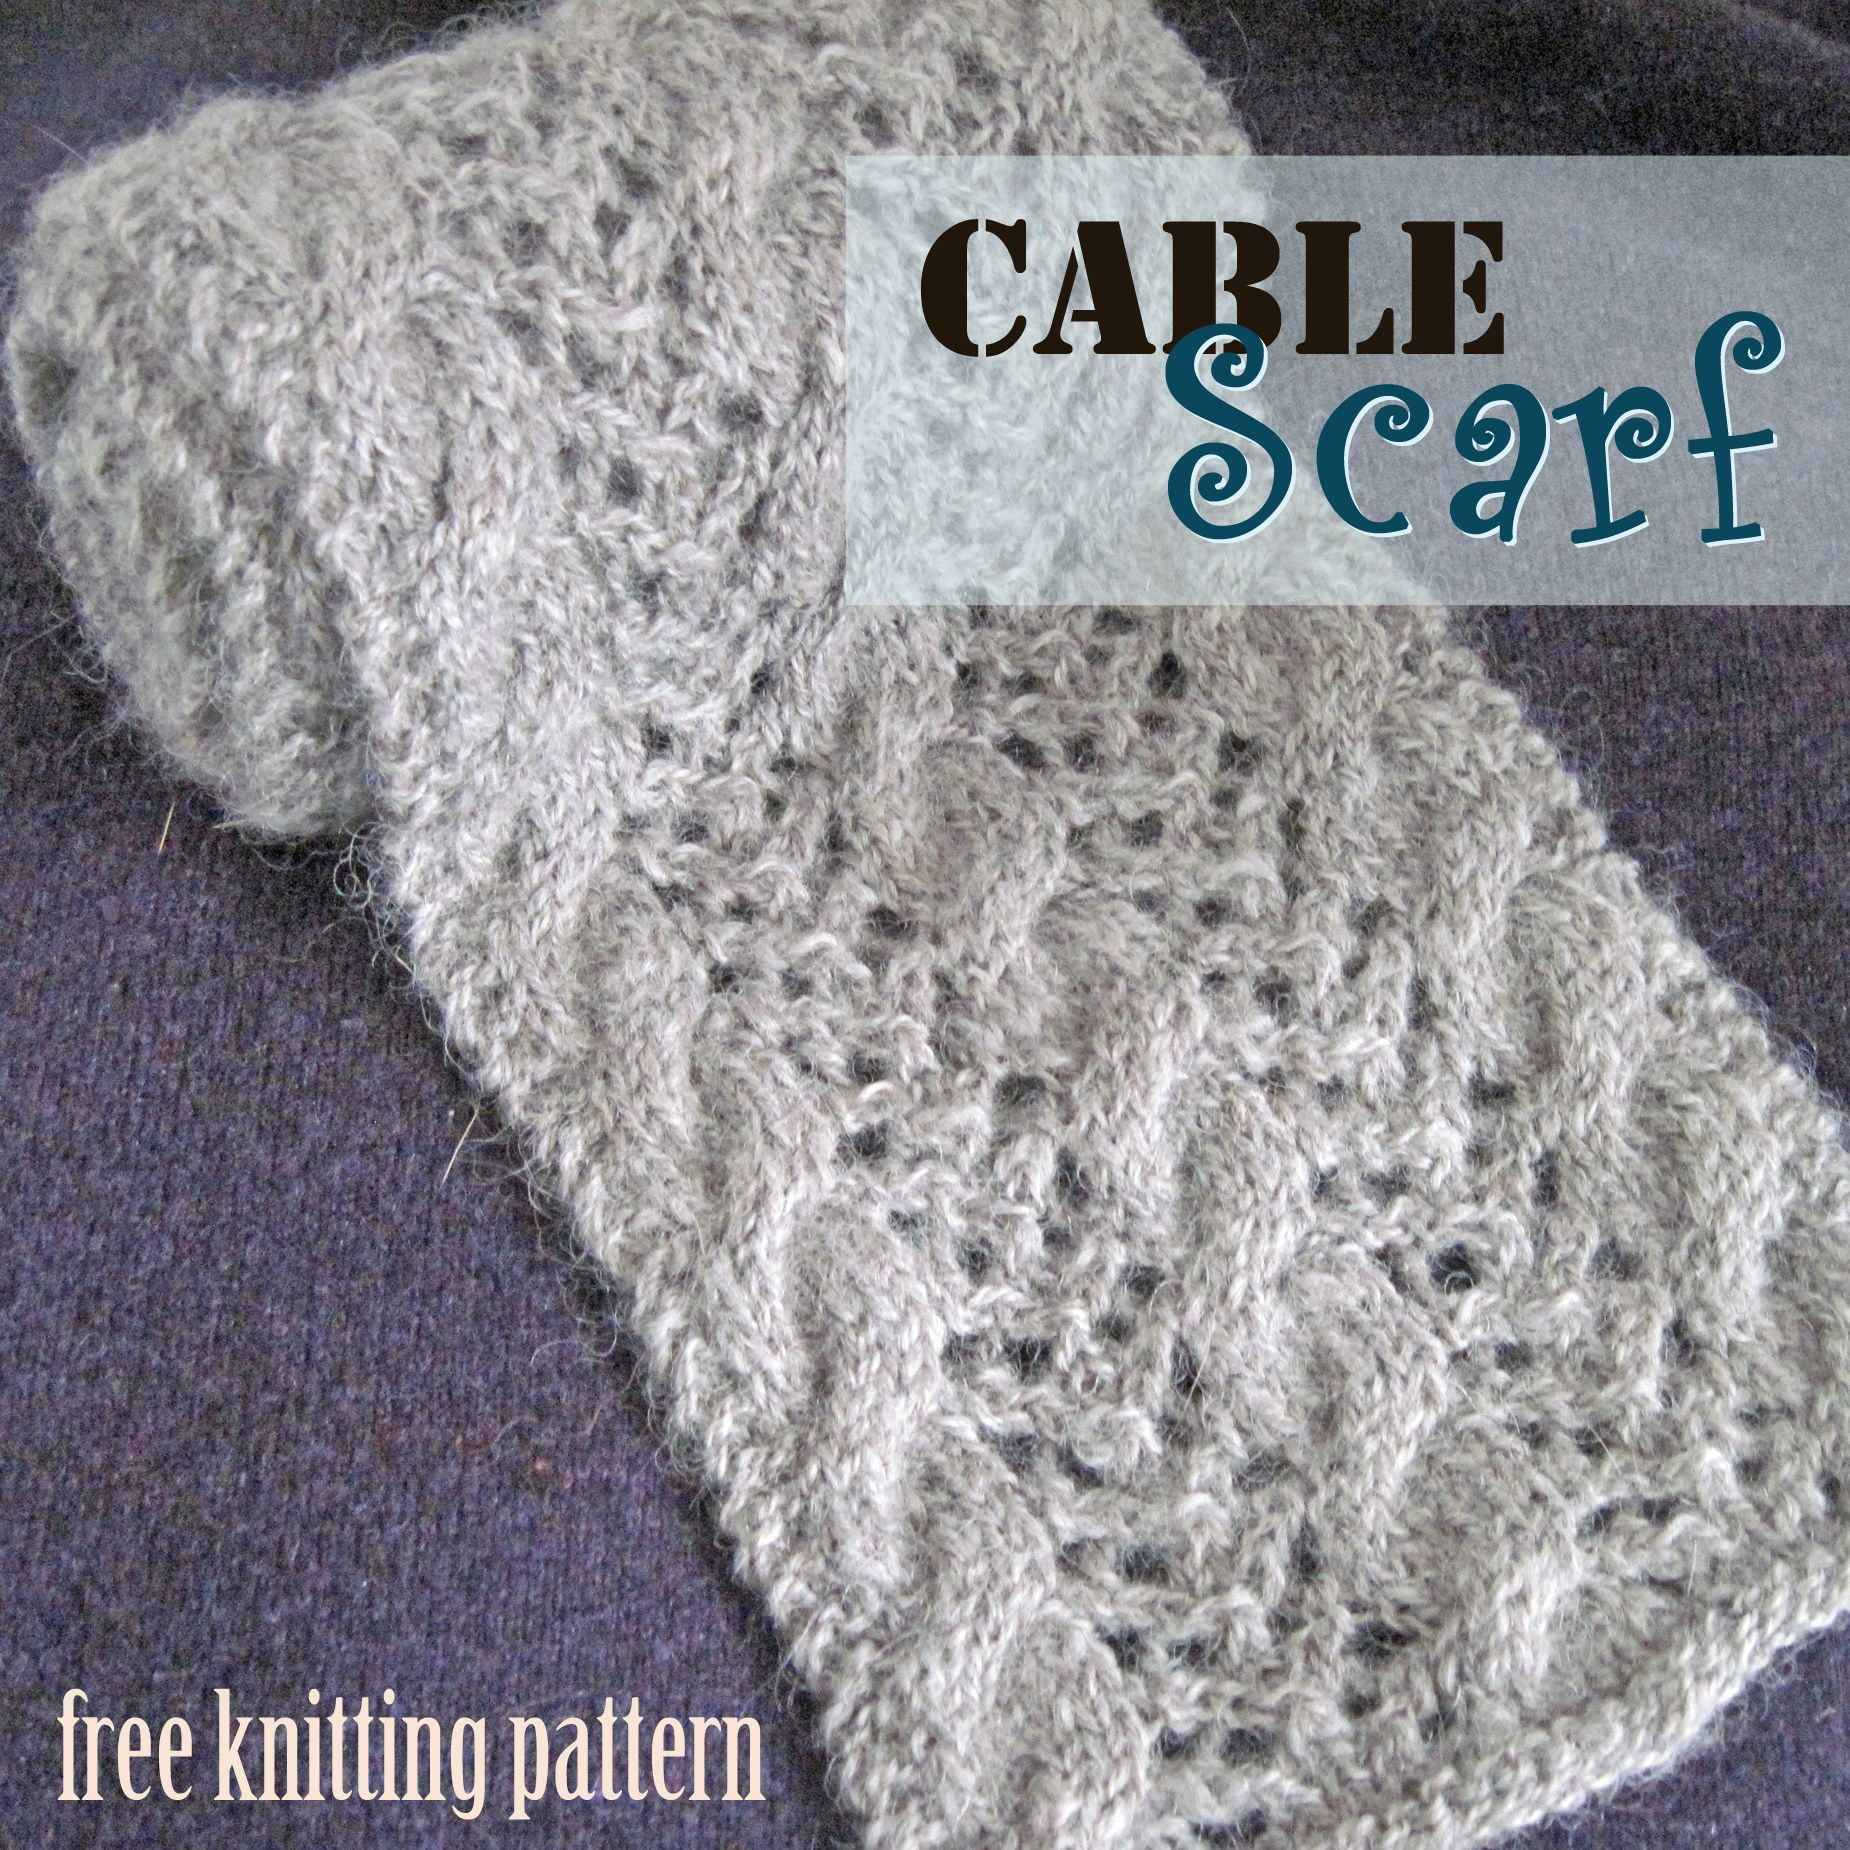 Free Knitting Pattern - Cable Scarf | Knitted Scarves & Shawls ...